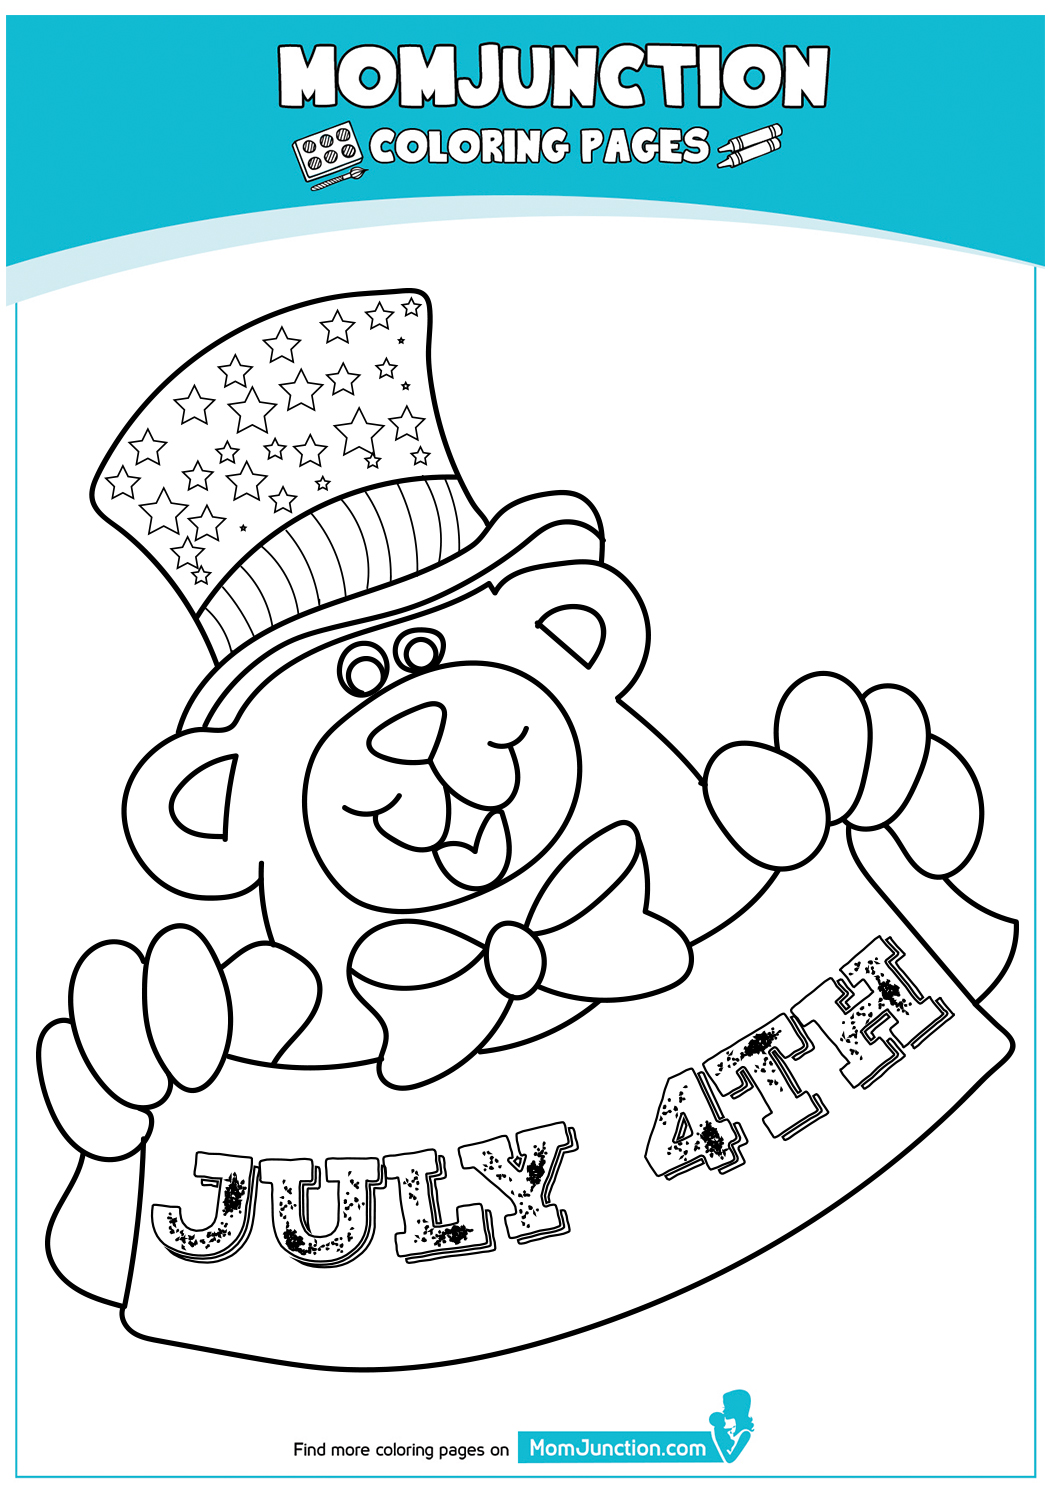 Patriotic-Teddy-Holding-Banner-317